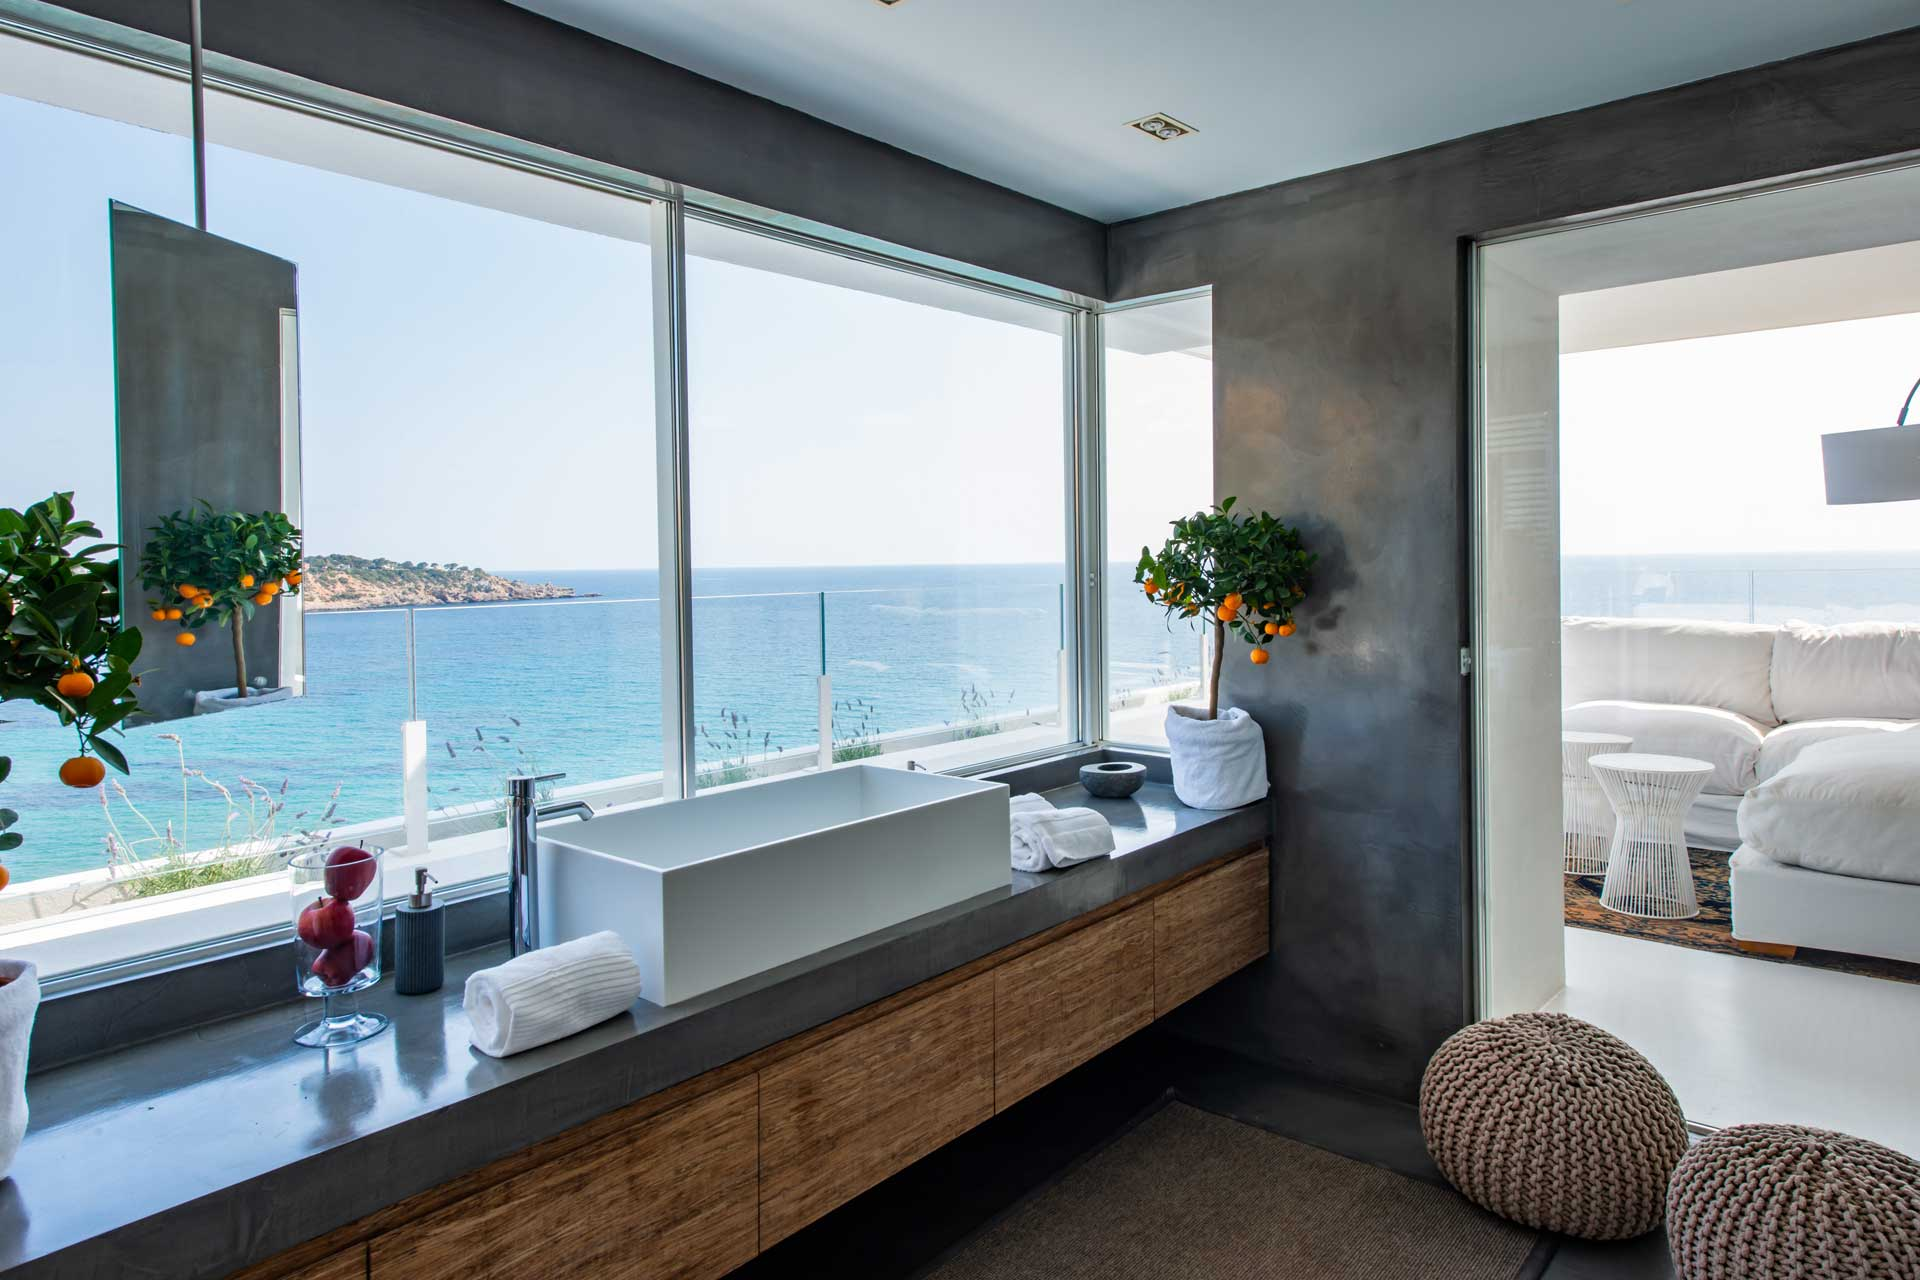 Villa Infinty Ibiza Vista Alegre - Master-Suite with en-suite bathroom